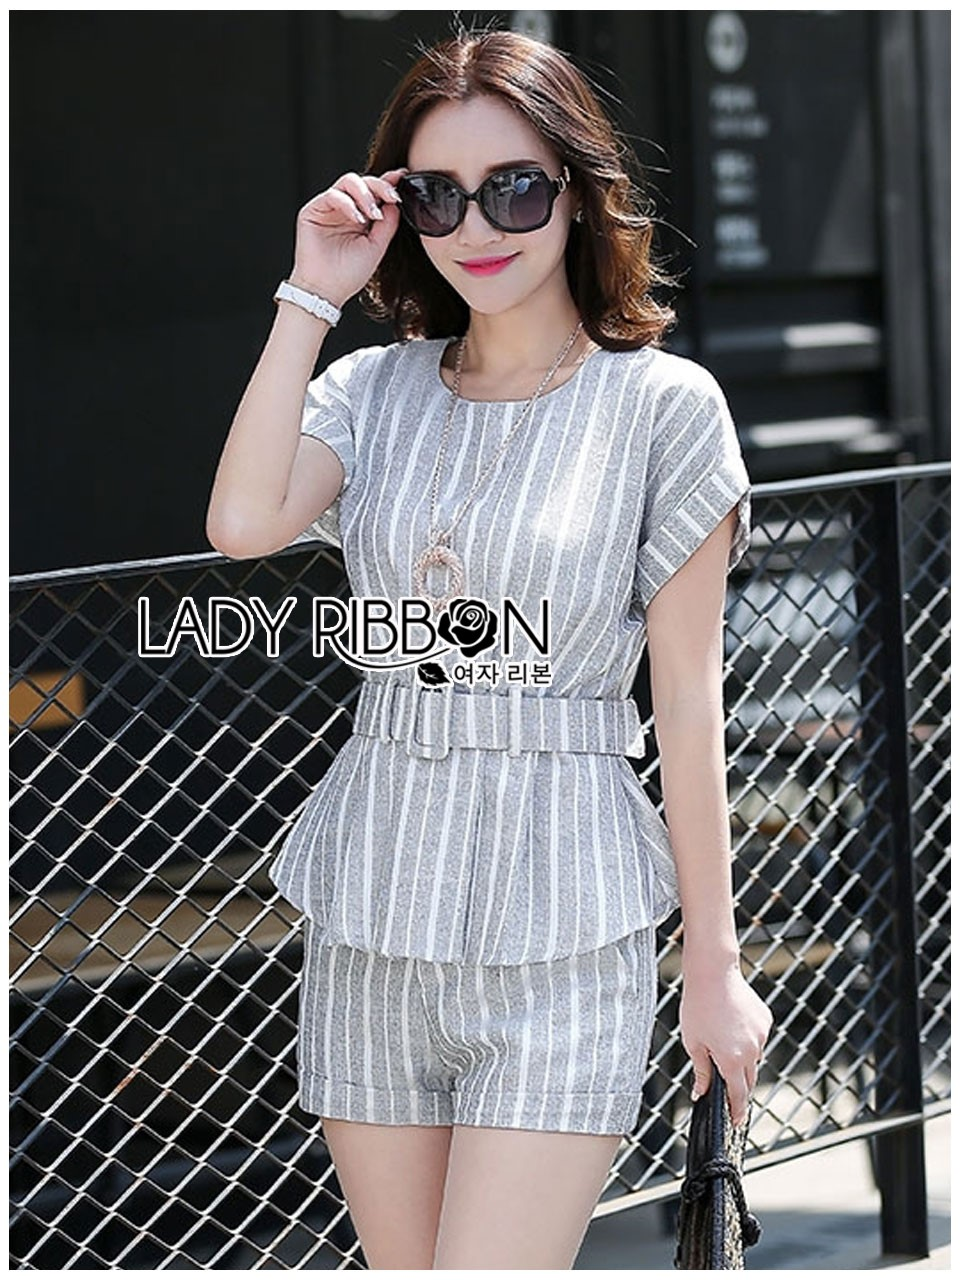 Lady Ribbon's Made Lady Amanda Smart Minimal Belted Top and Shorts Set สีเทาลายทาง